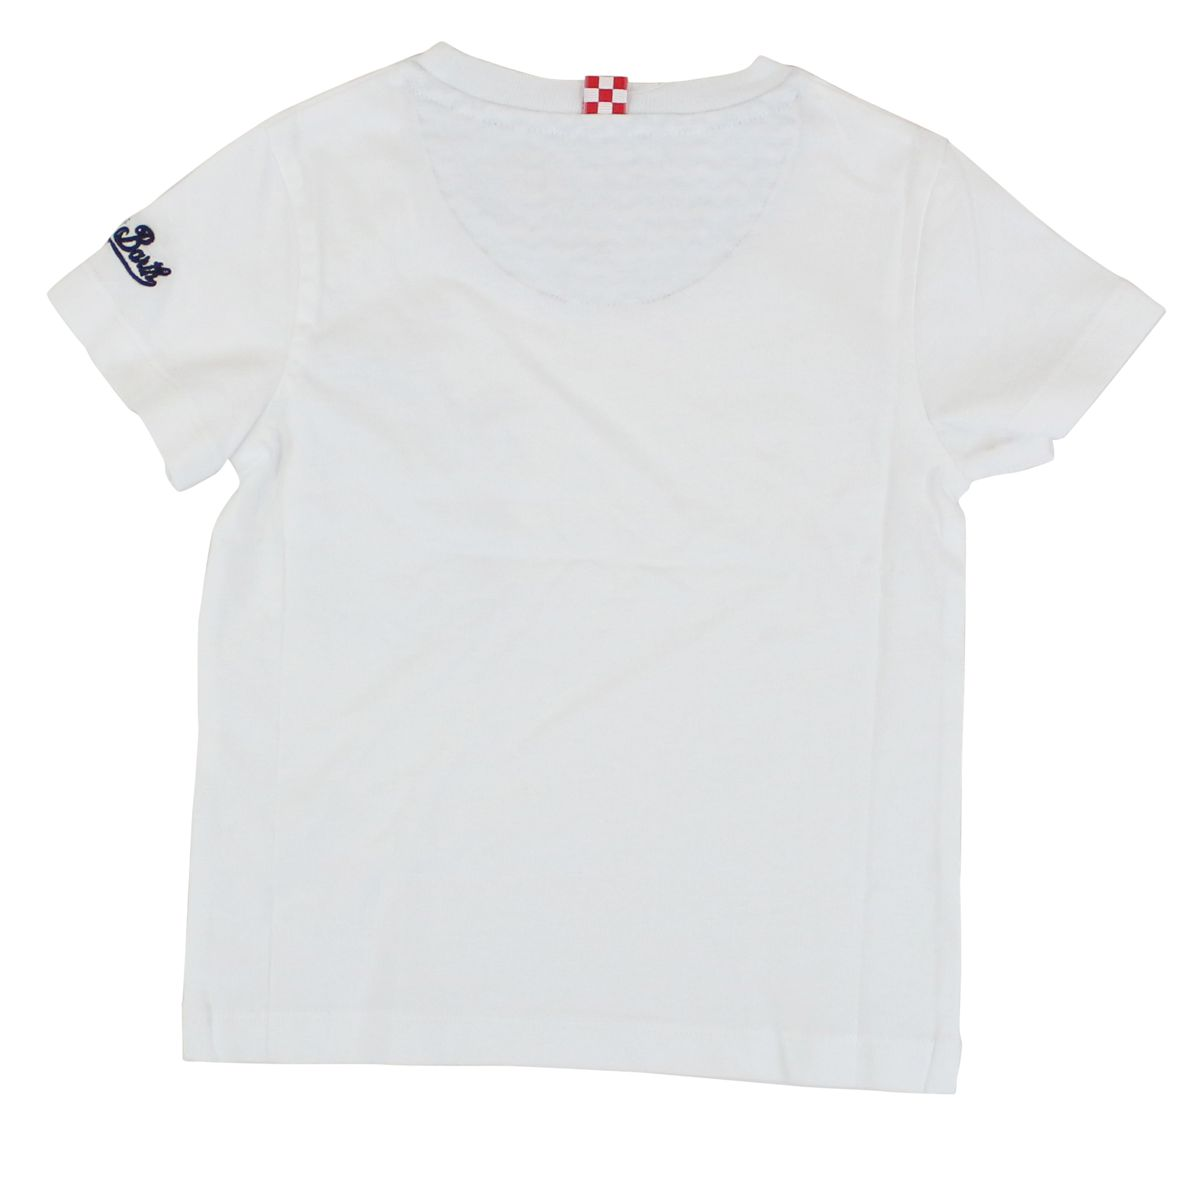 Avocado pocket t-shirt White MC2 Saint Barth